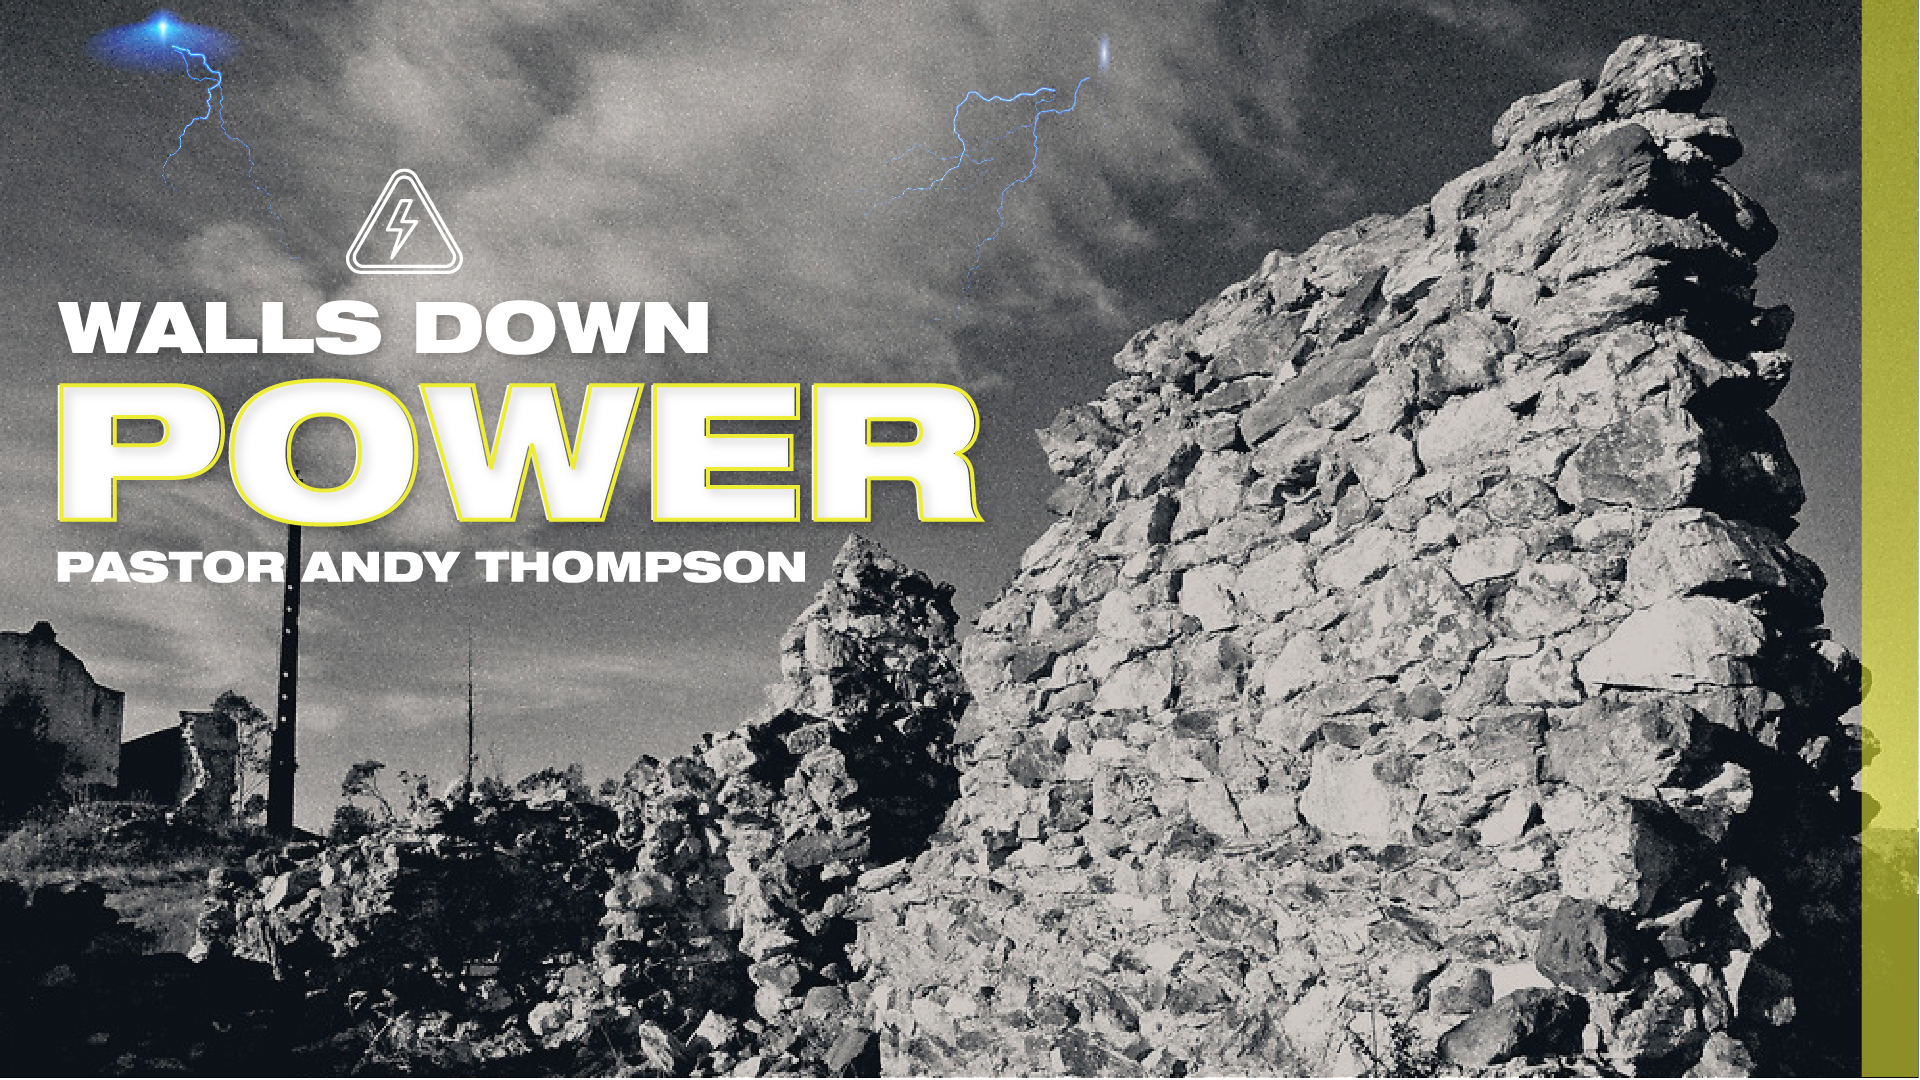 walls-down-power_Sermon Title Graphic - SCREEN.jpg